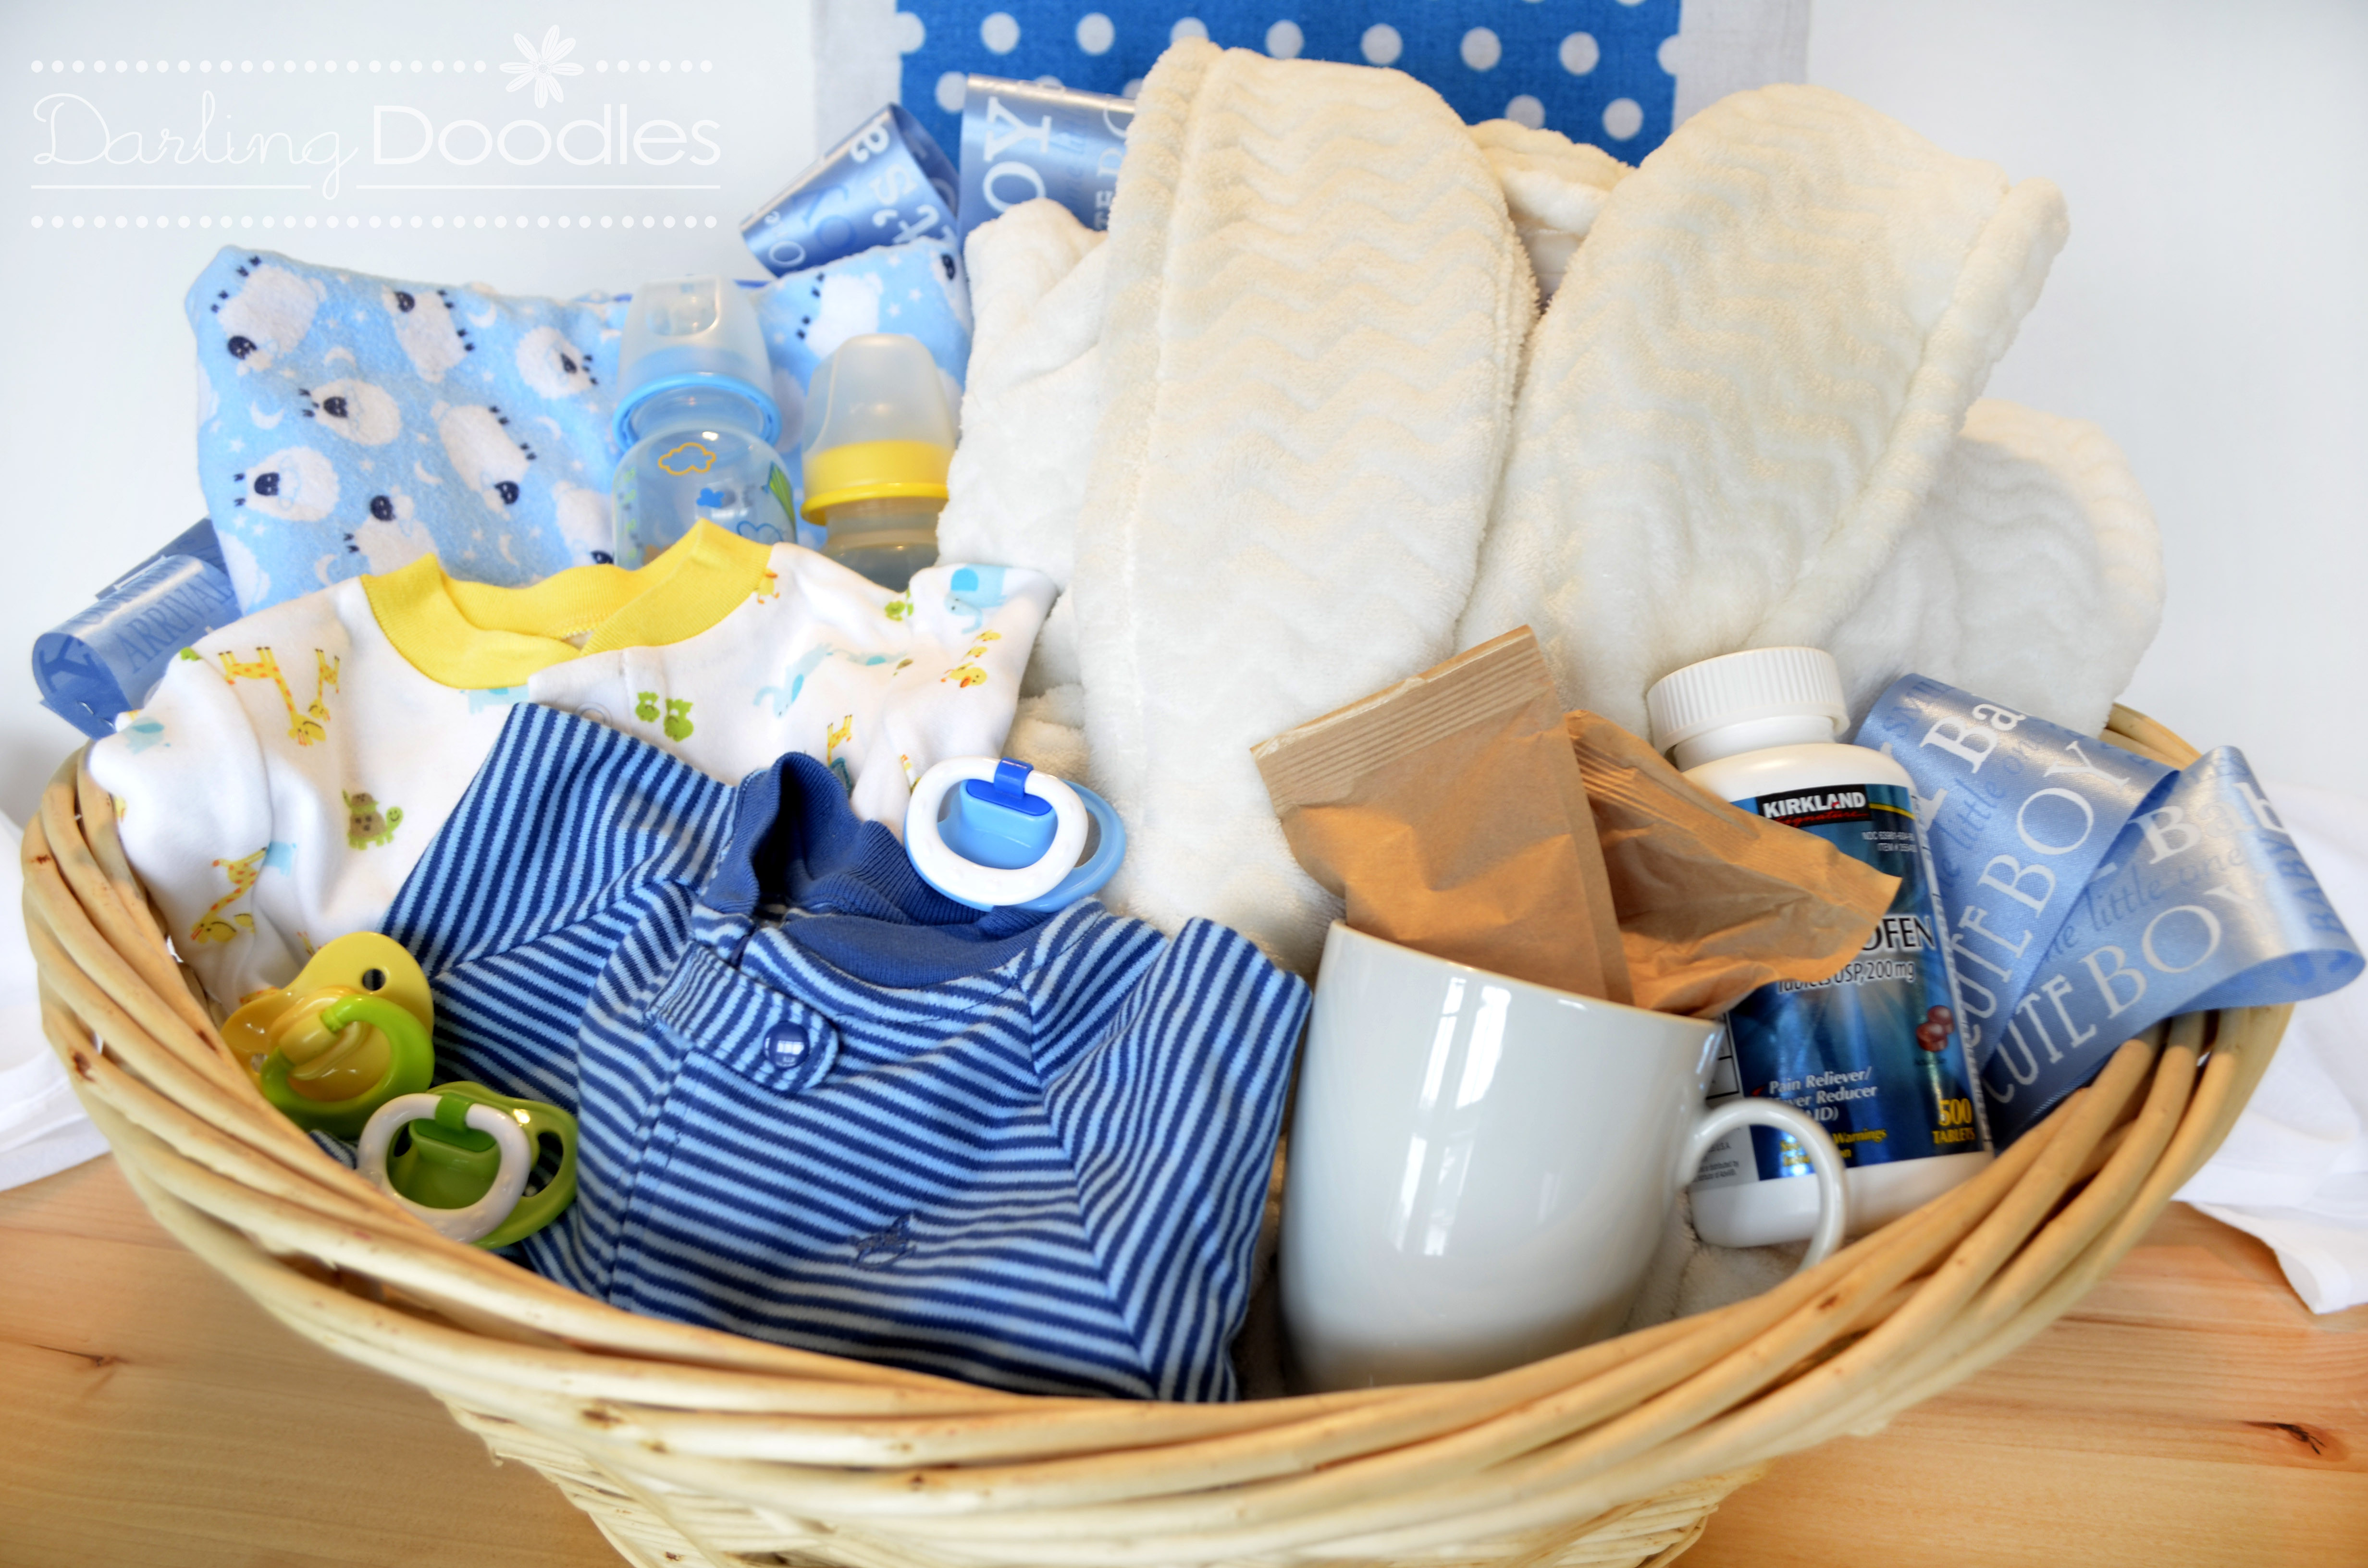 Best ideas about Baby Shower Gift Basket Ideas . Save or Pin Up All Night Survival Kit Darling Doodles Now.